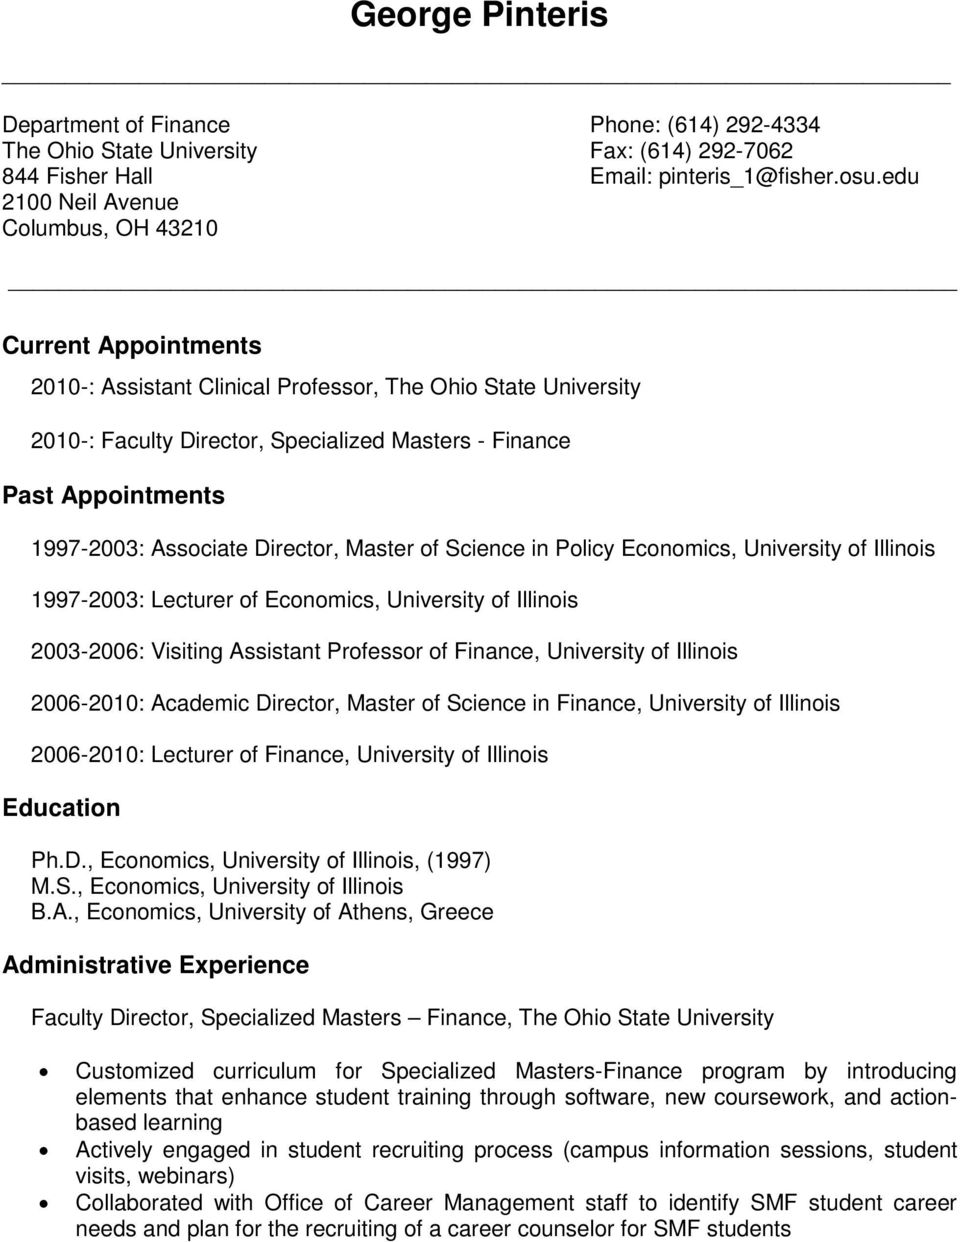 1997-2003: Associate Director, Master of Science in Policy Economics, University of Illinois 1997-2003: Lecturer of Economics, University of Illinois 2003-2006: Visiting Assistant Professor of